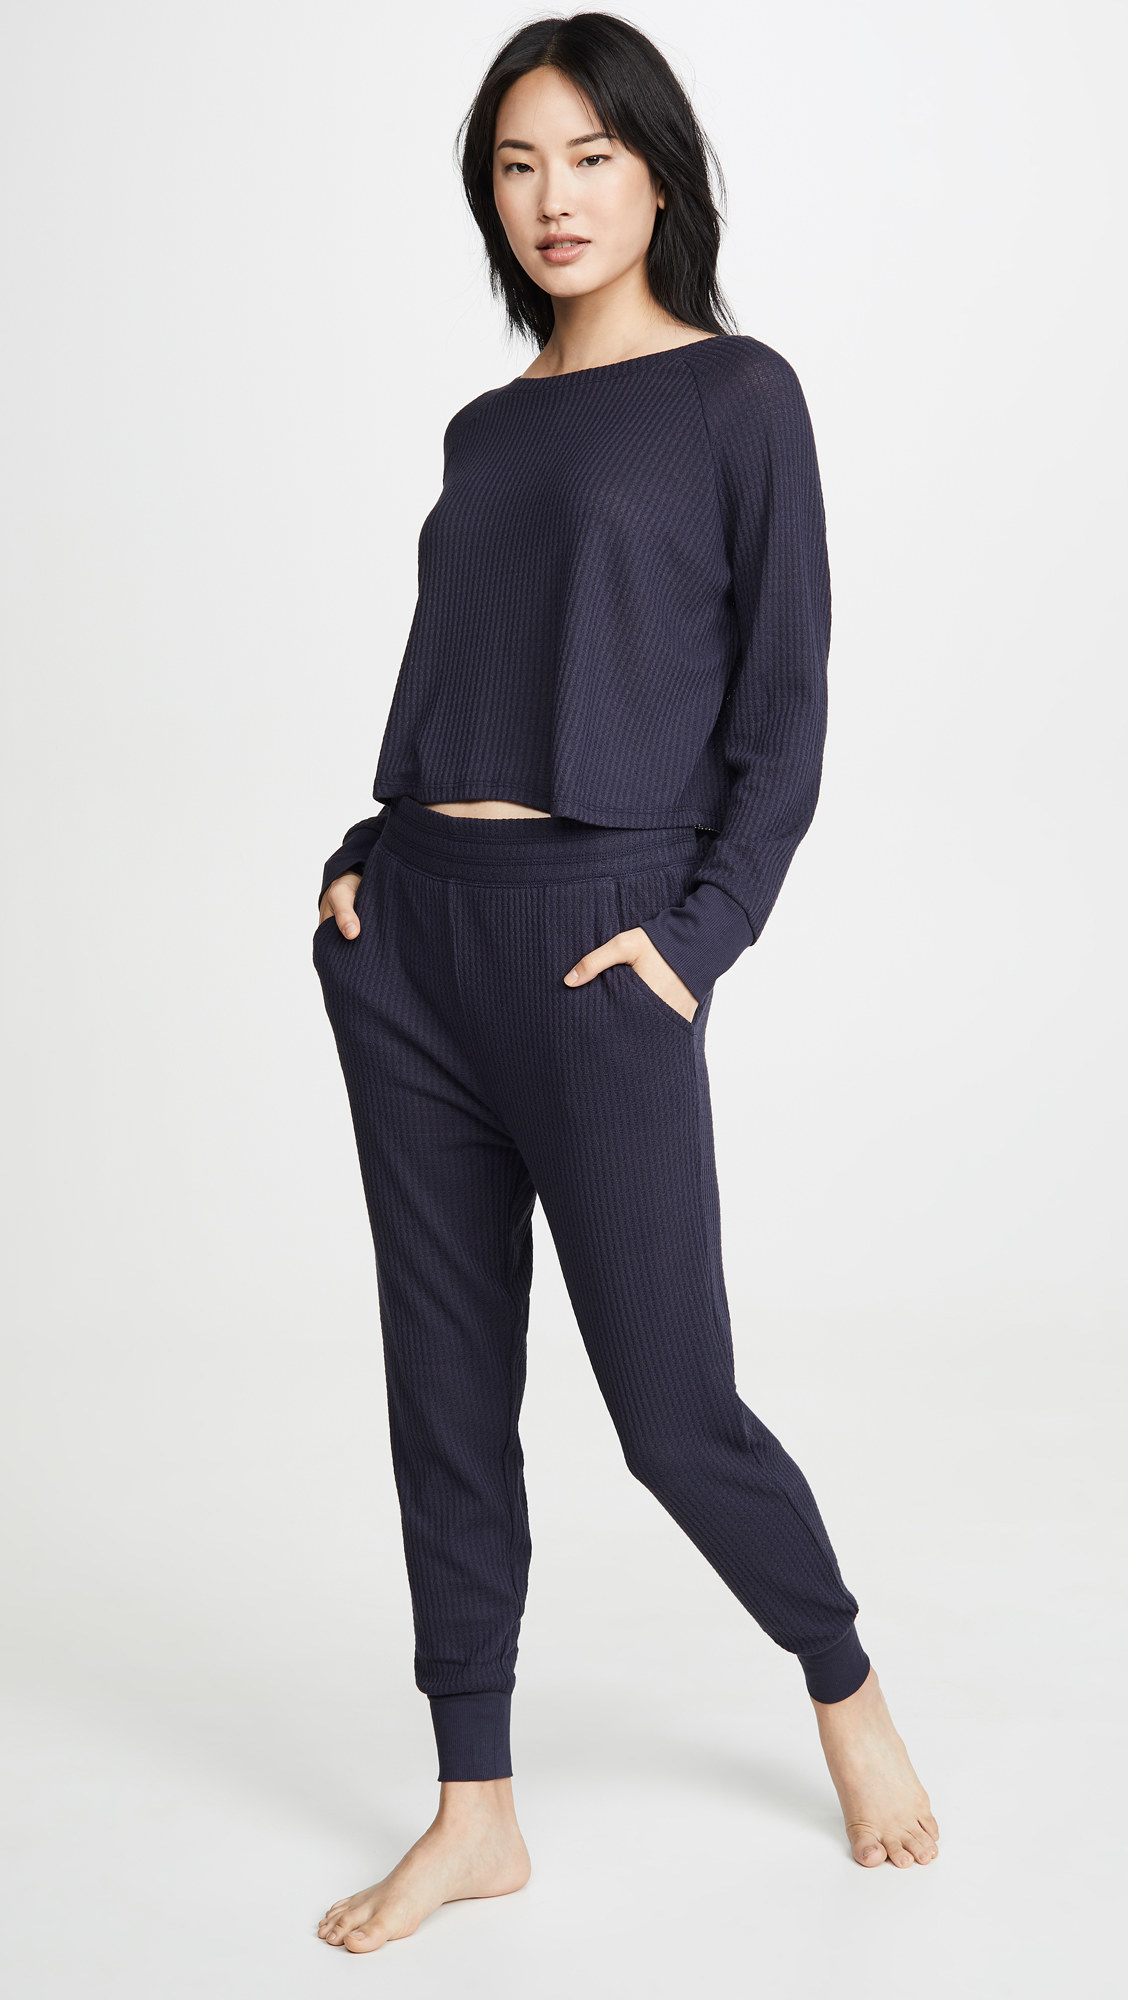 Model wearing the navy version of the pants with the matching longe-sleeve top